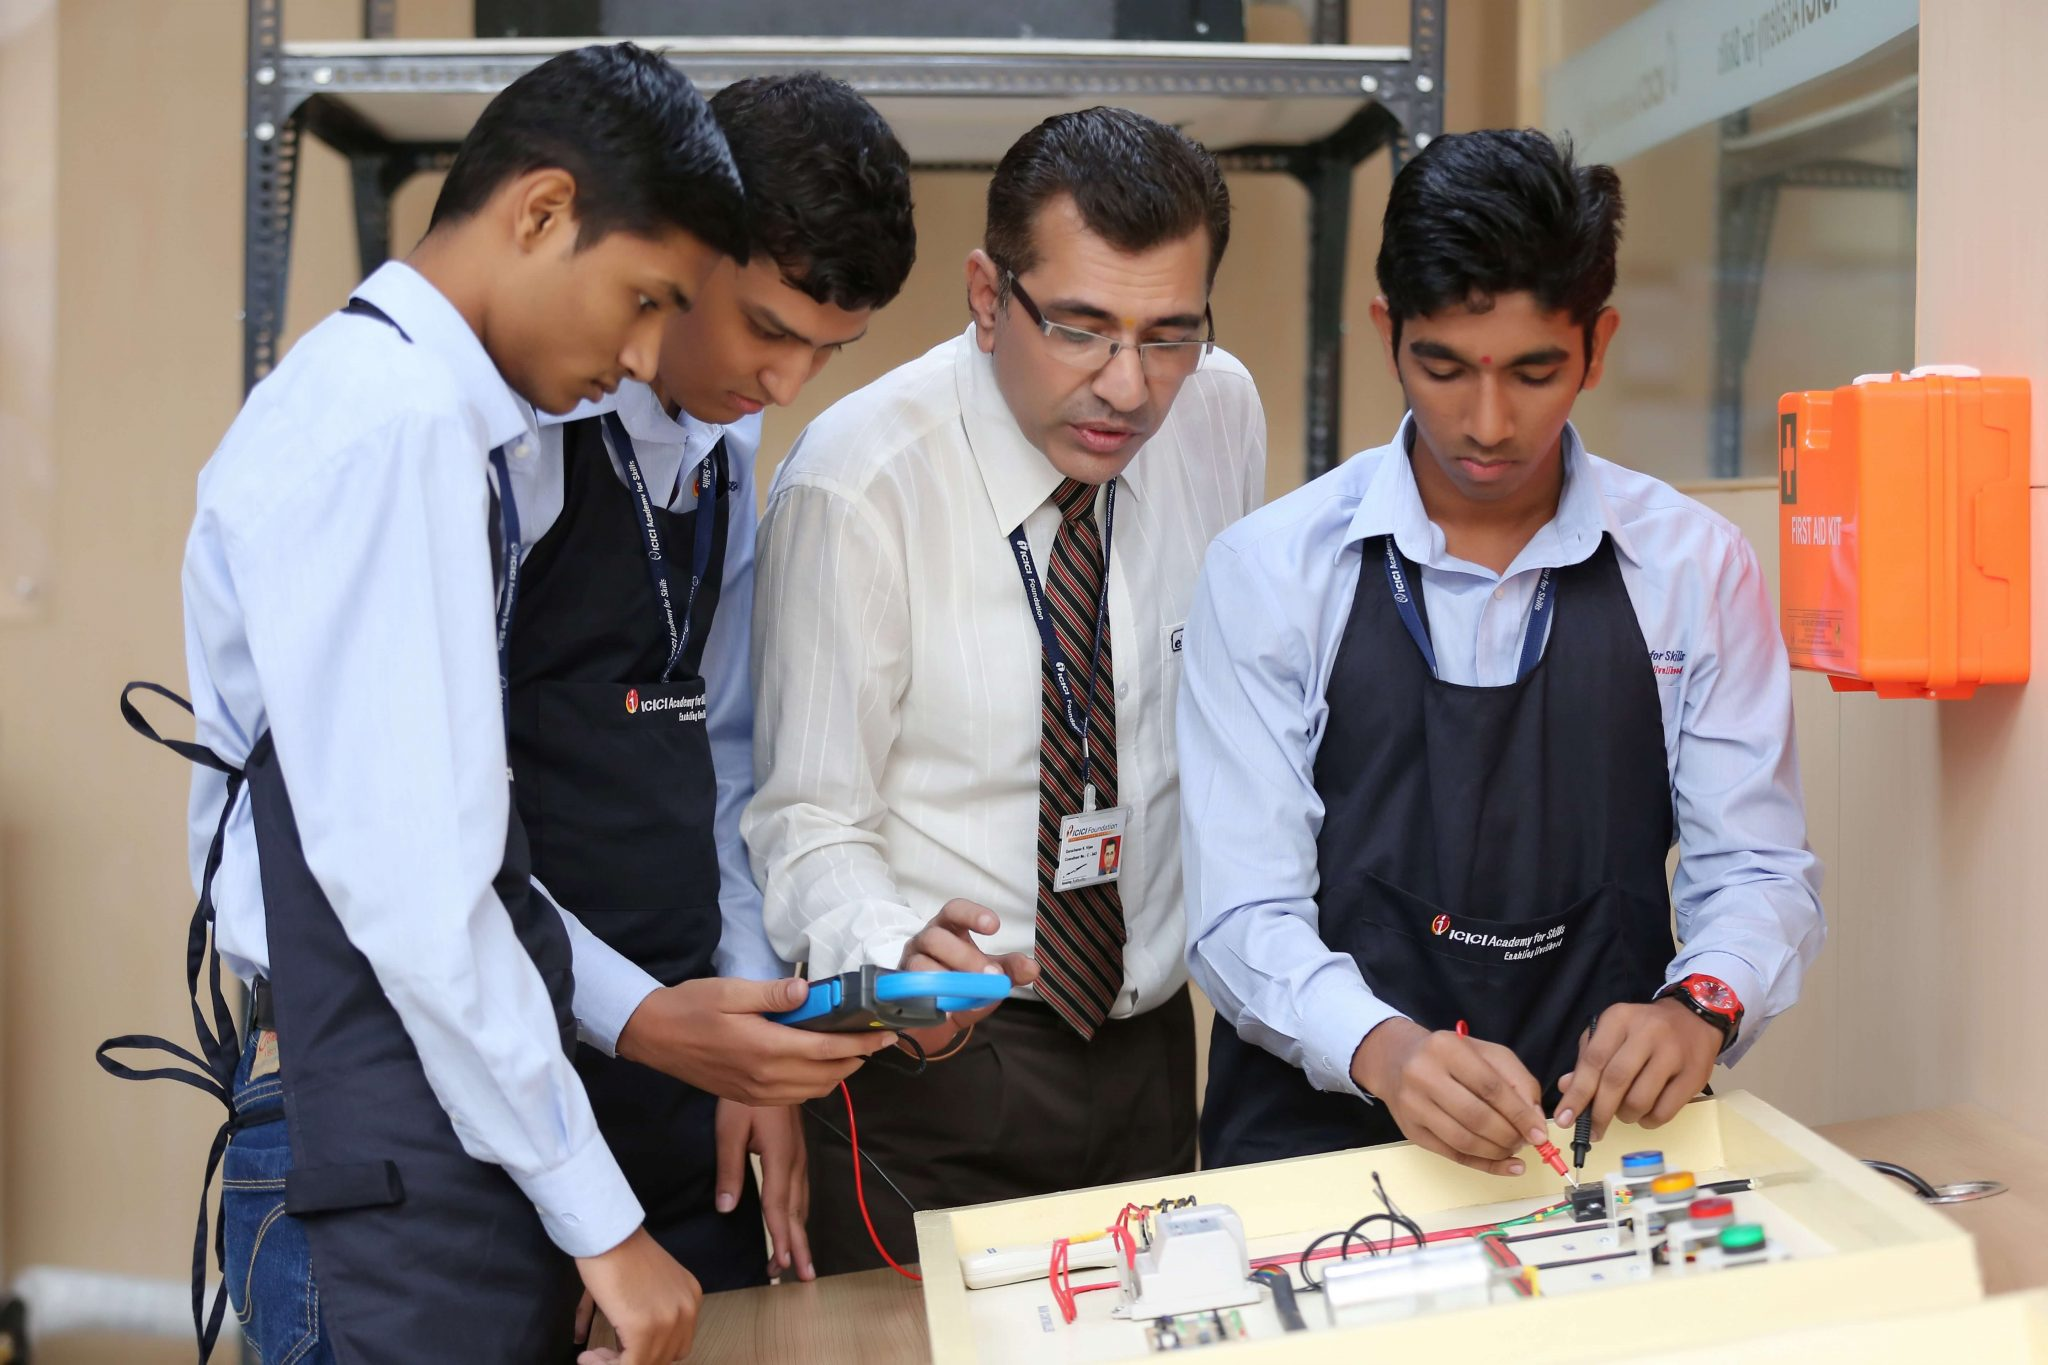 ICICI Bank focuses on skill development and livelihood programs for inclusive growth under its CSR activities